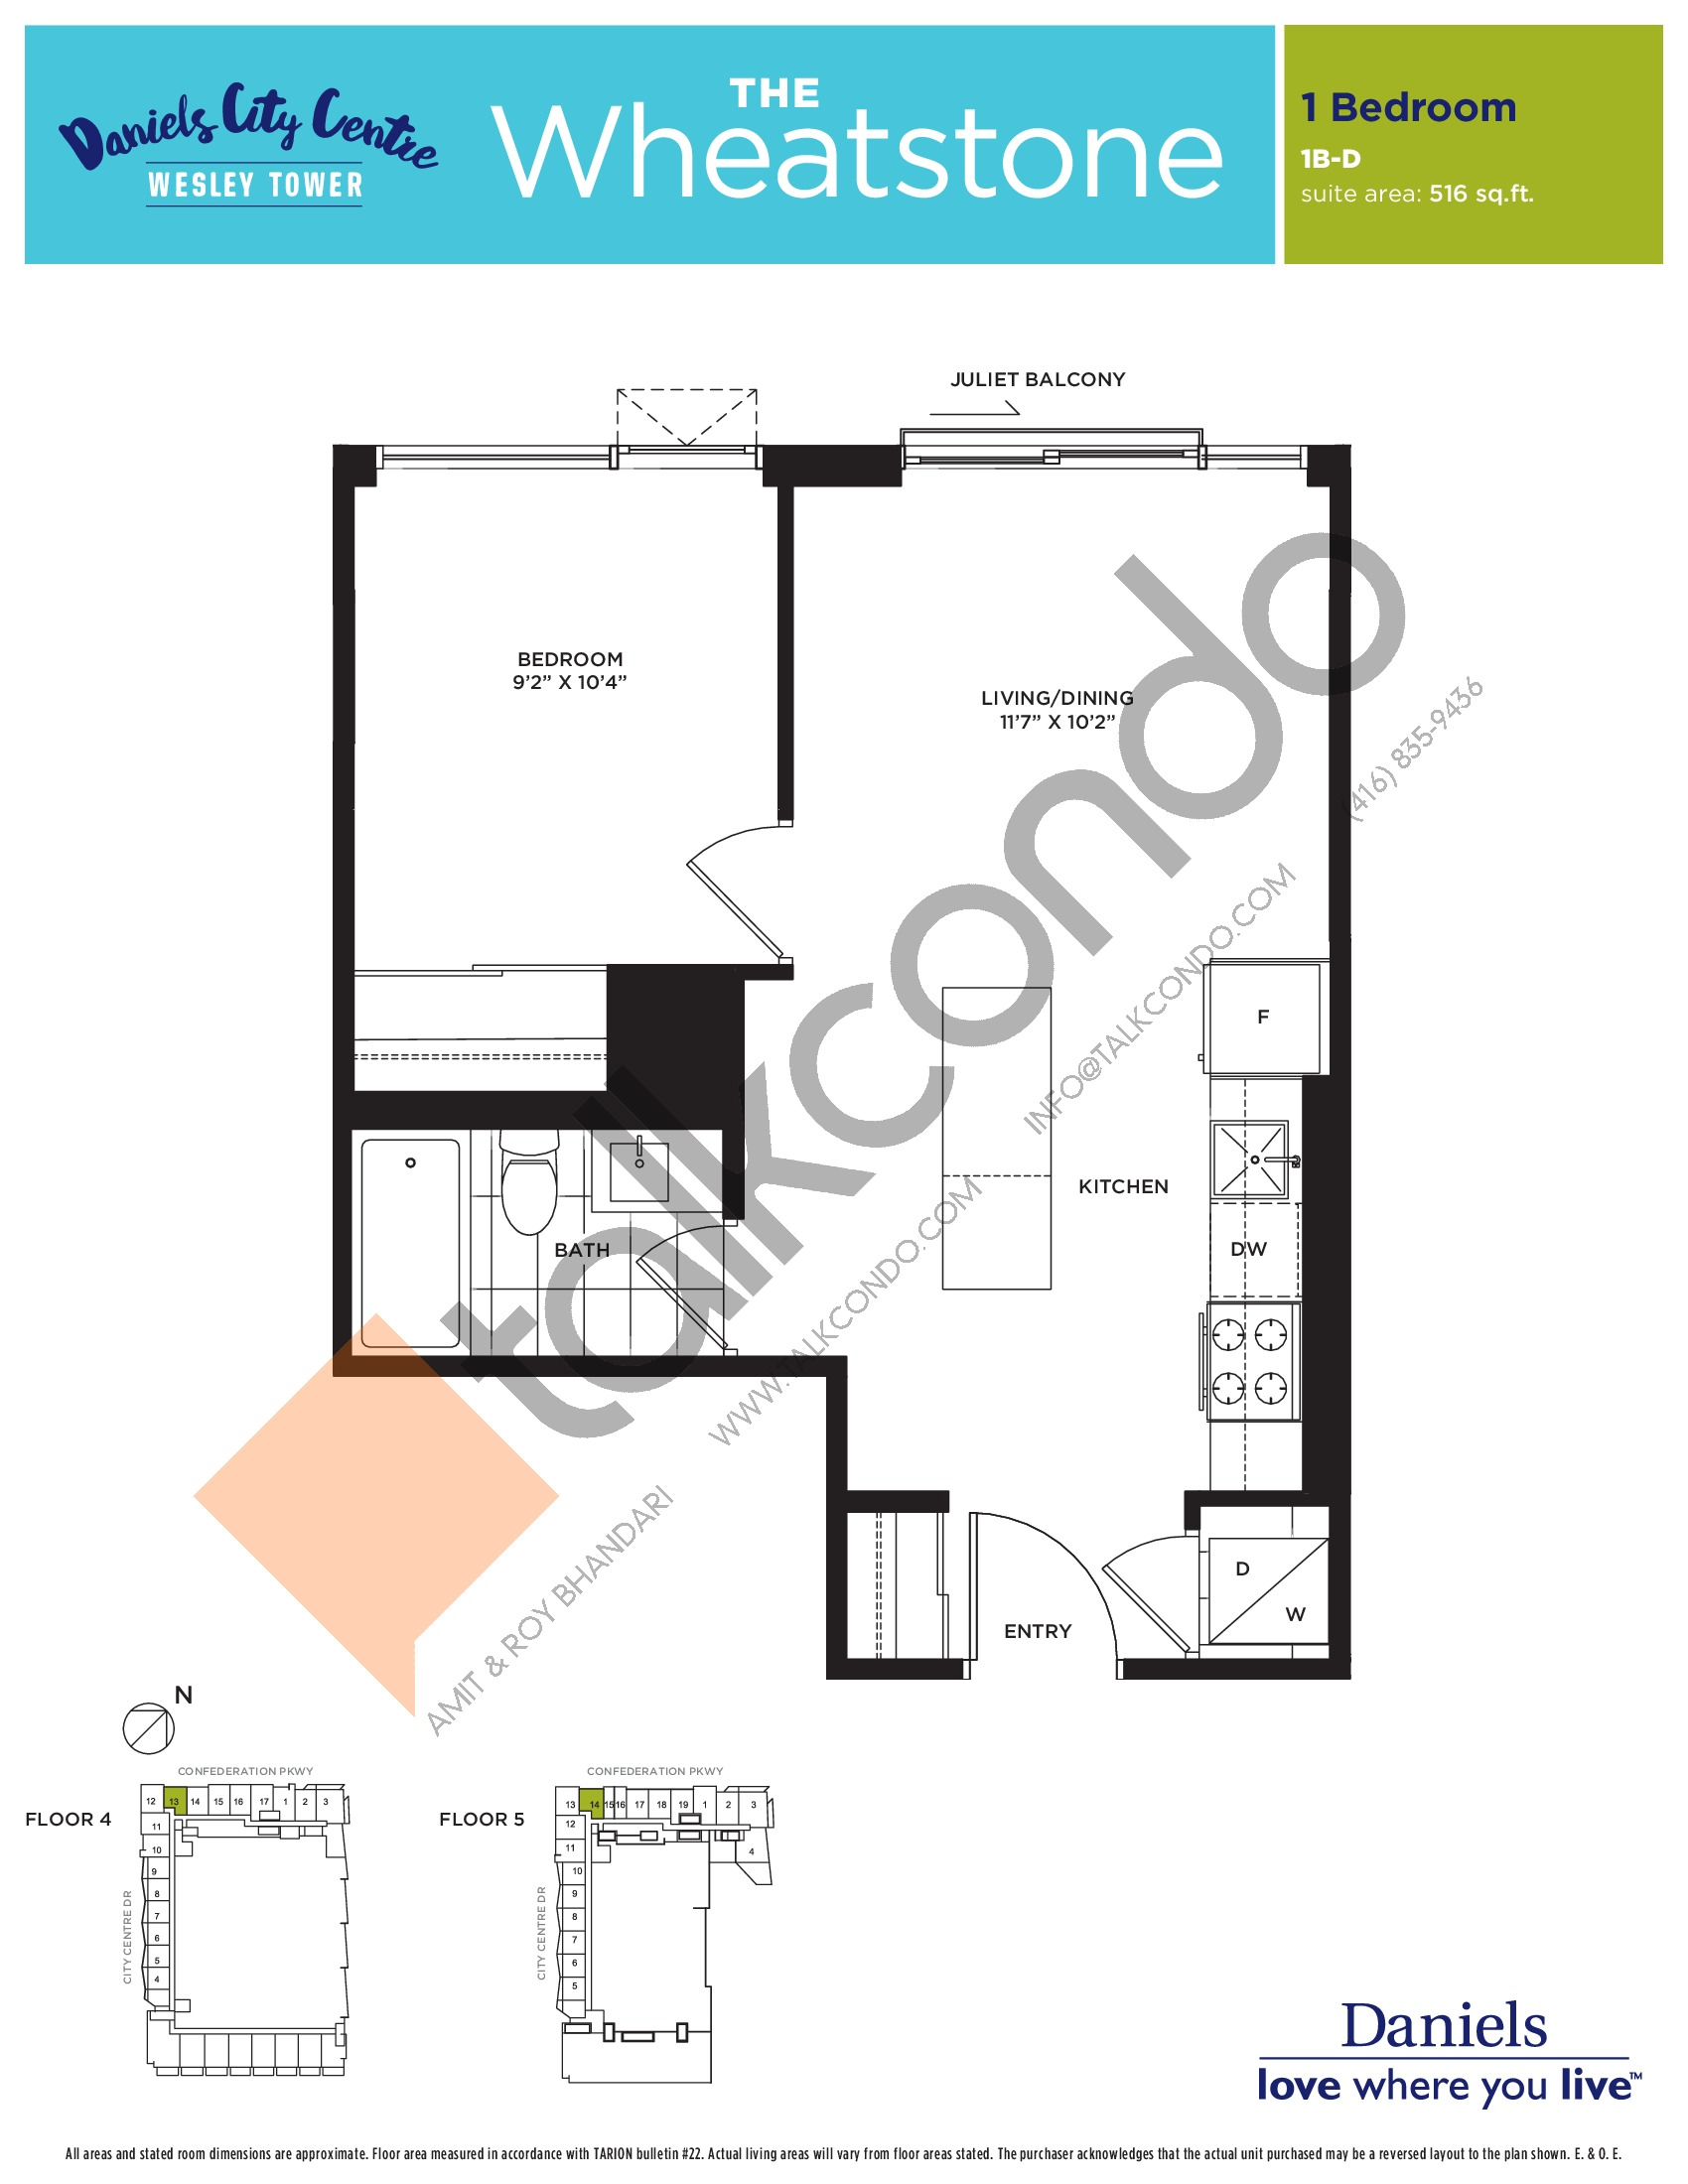 The Wheatstone Floor Plan at The Wesley Tower at Daniels City Centre Condos - 516 sq.ft